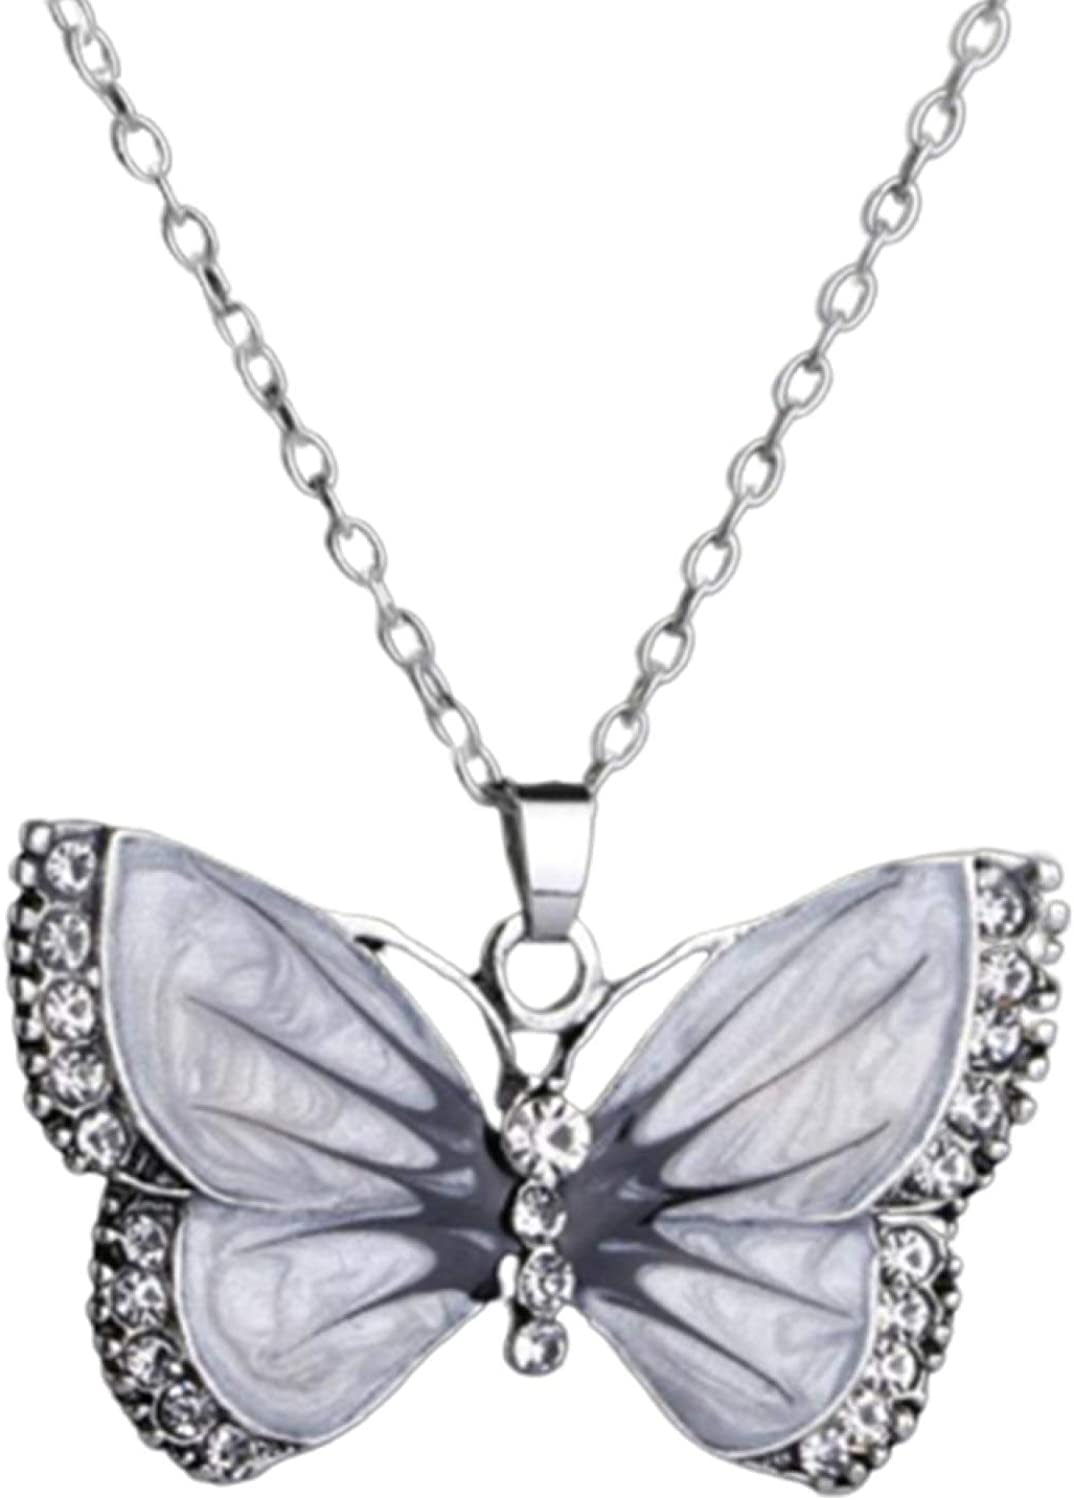 Retro Memphis Mall Rhinestone Inlaid Butterfly Store Jewelry Pendant Chain Necklace